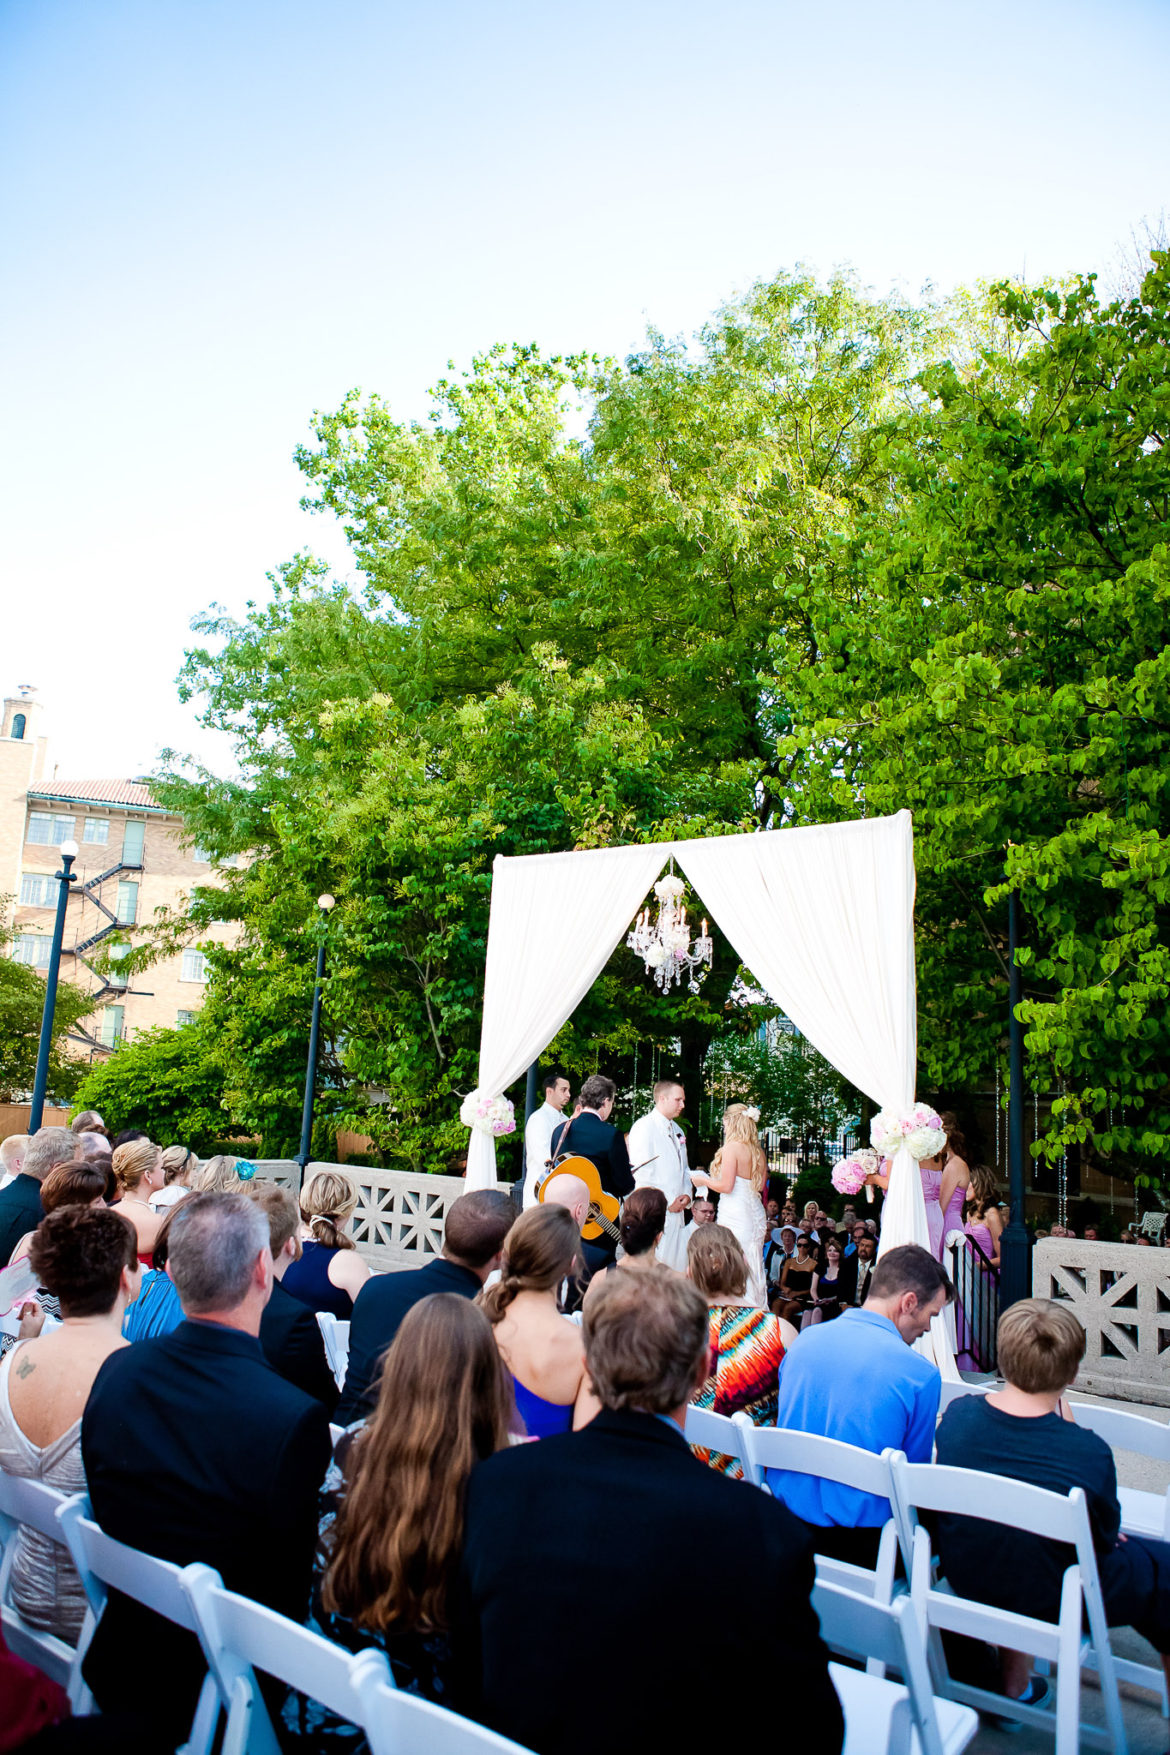 Elegant_Event_Lighting_Chicago_Hotel_Baker_St_Charles_Wedding_Arch_Outdoo